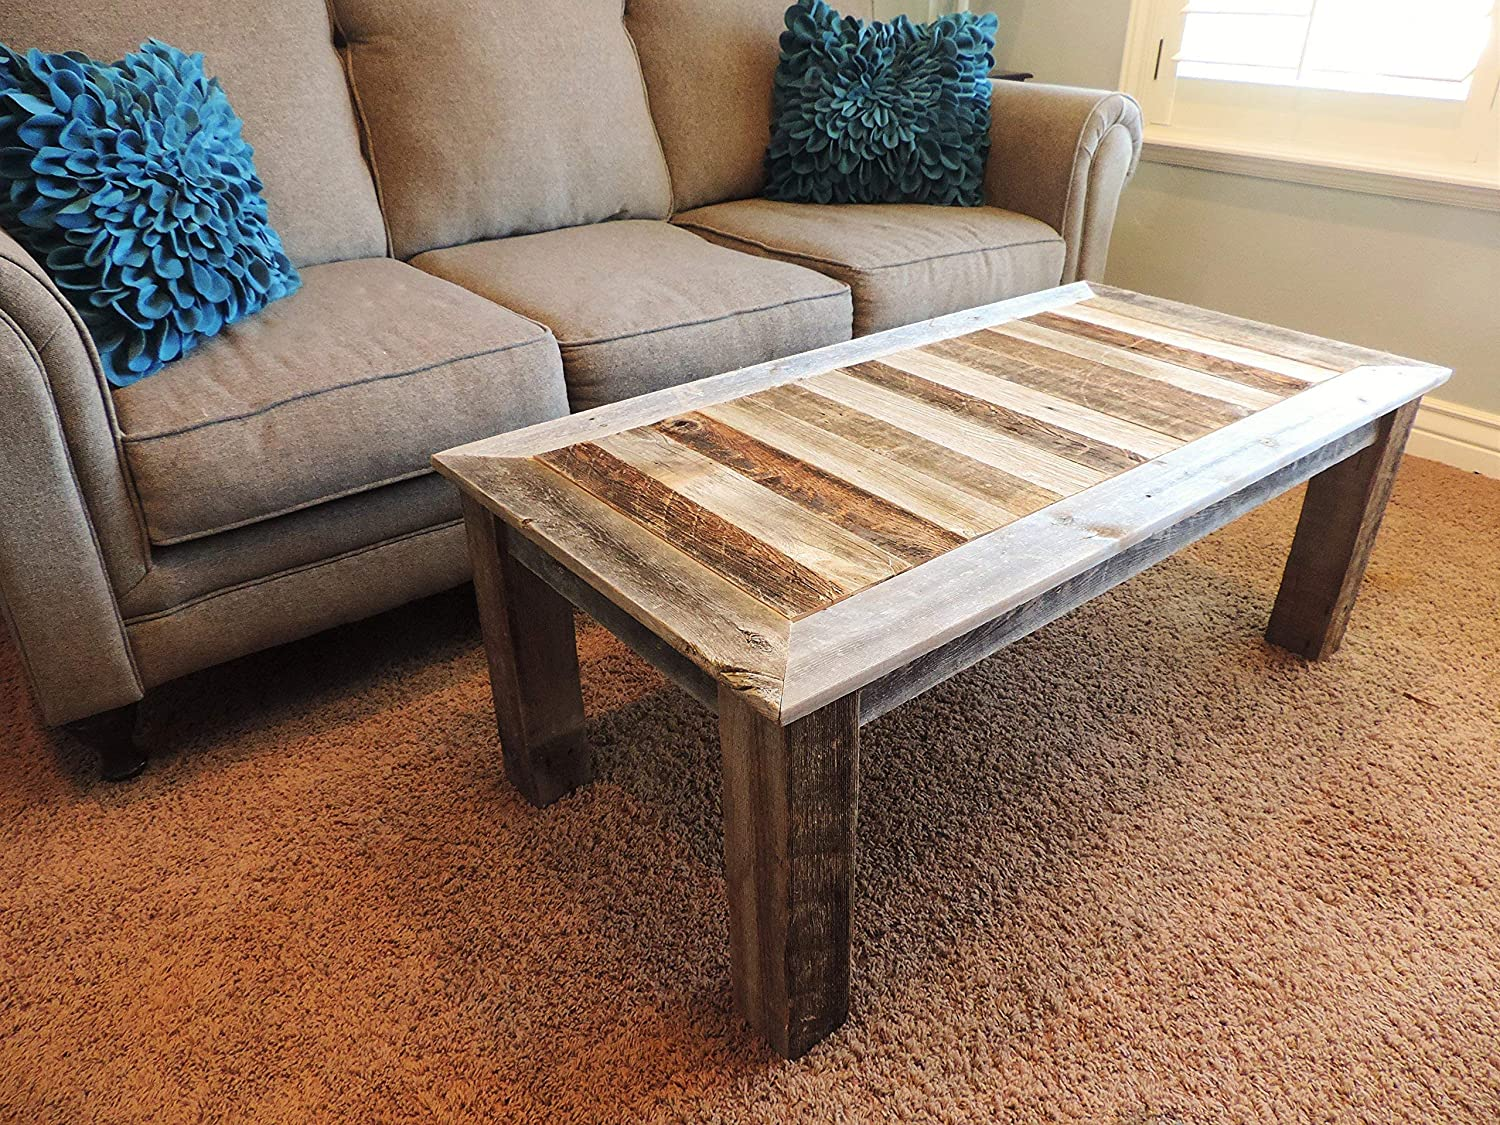 Amazon.com: Rustic Reclaimed Wood Coffee Table, Solid ...